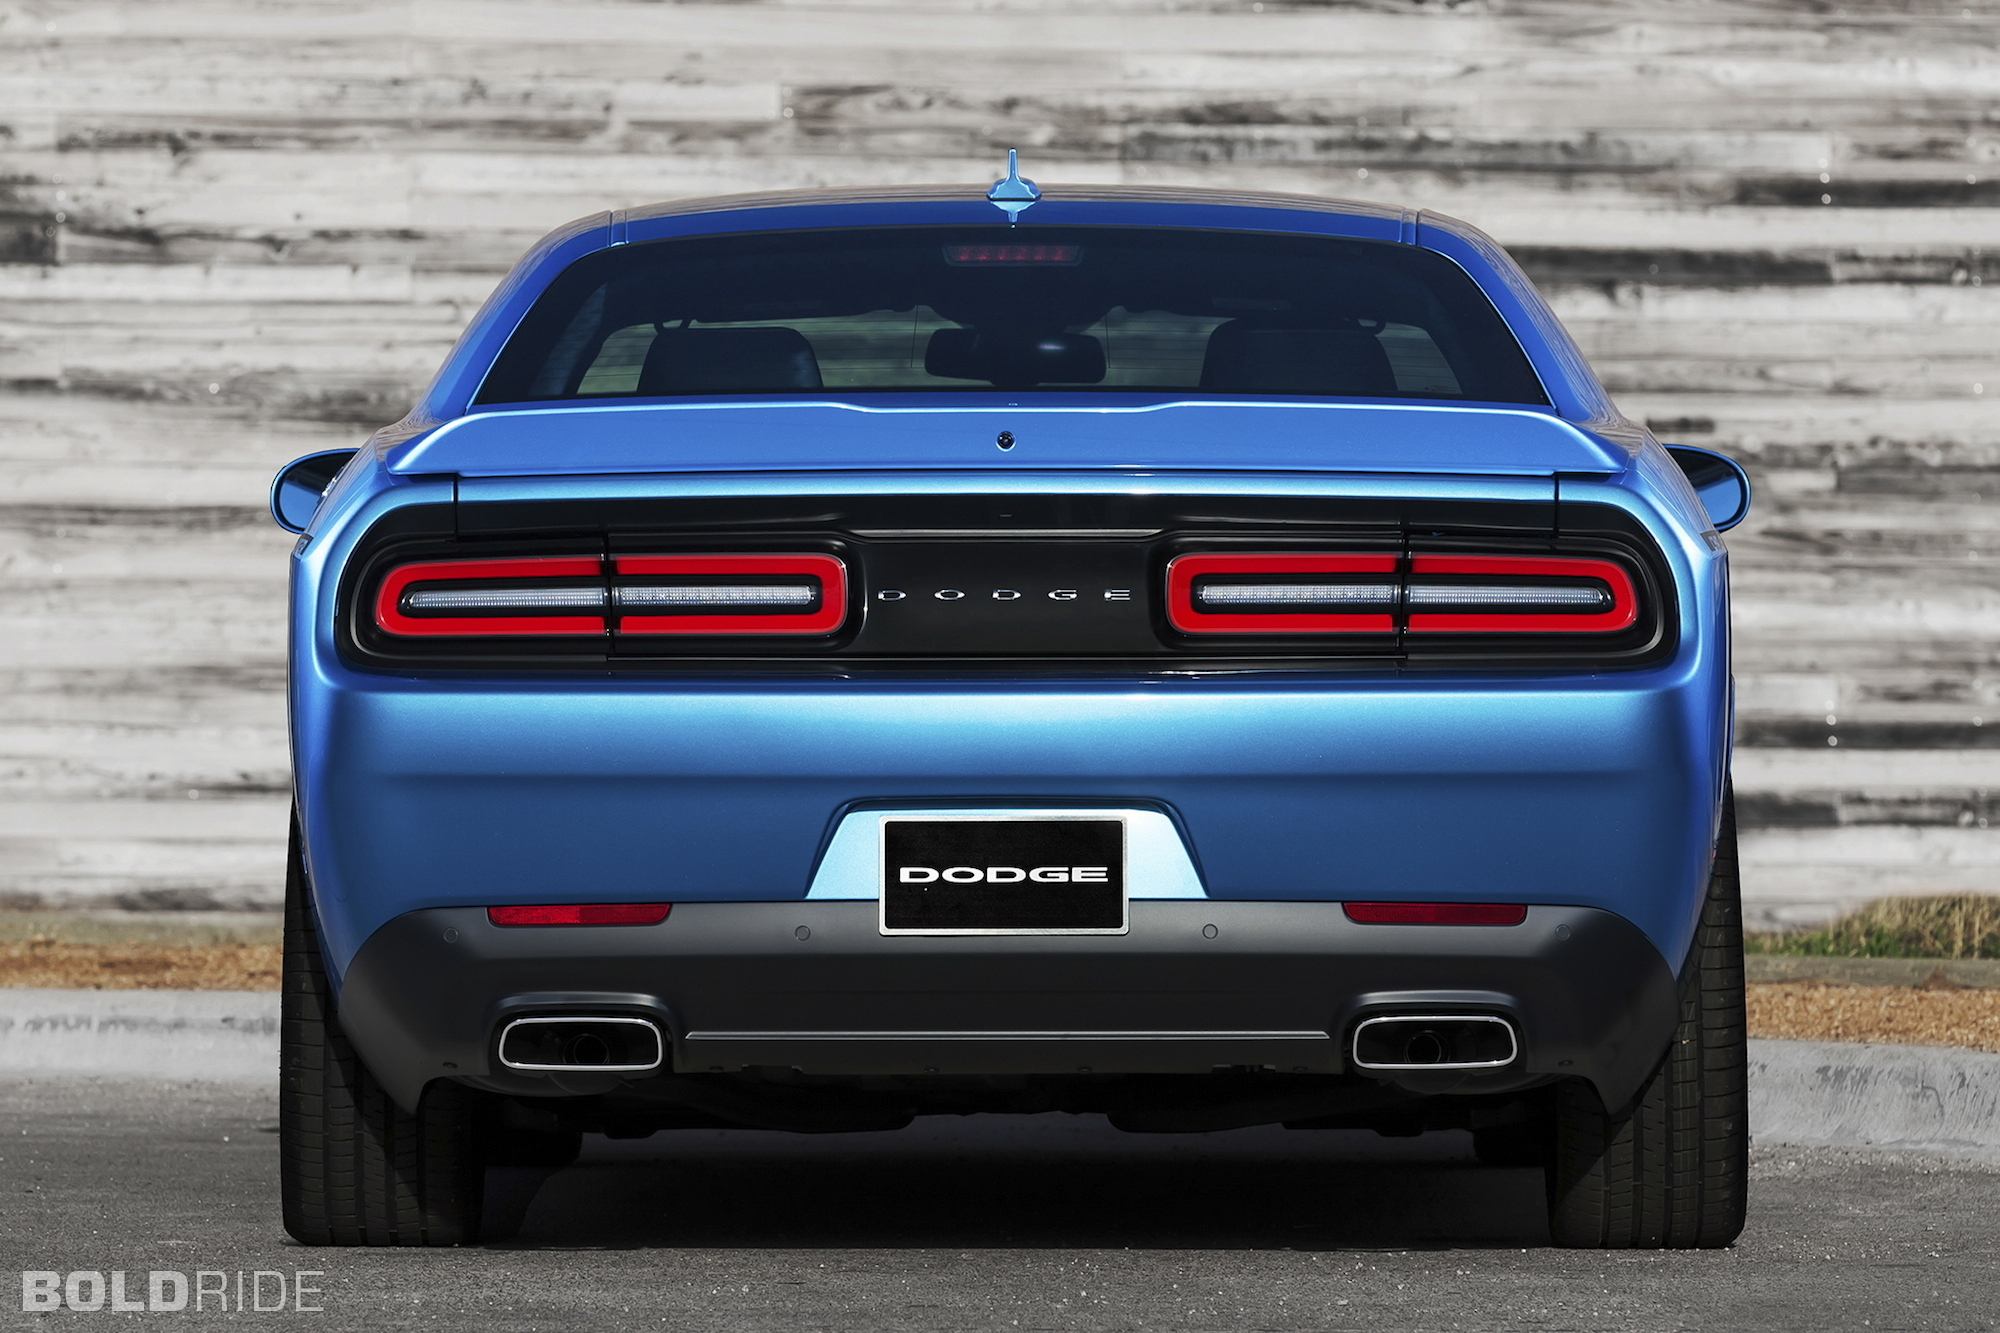 of in sc charger on salvage left en greer view dodge auto se lot online title copart carfinder black auctions cert sale